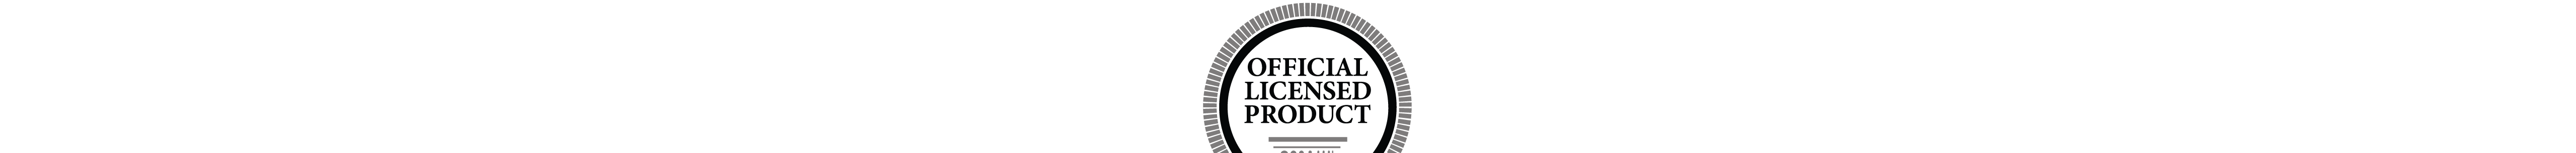 Official Licensed Product Vendor Creeds & Crests Greek life Products